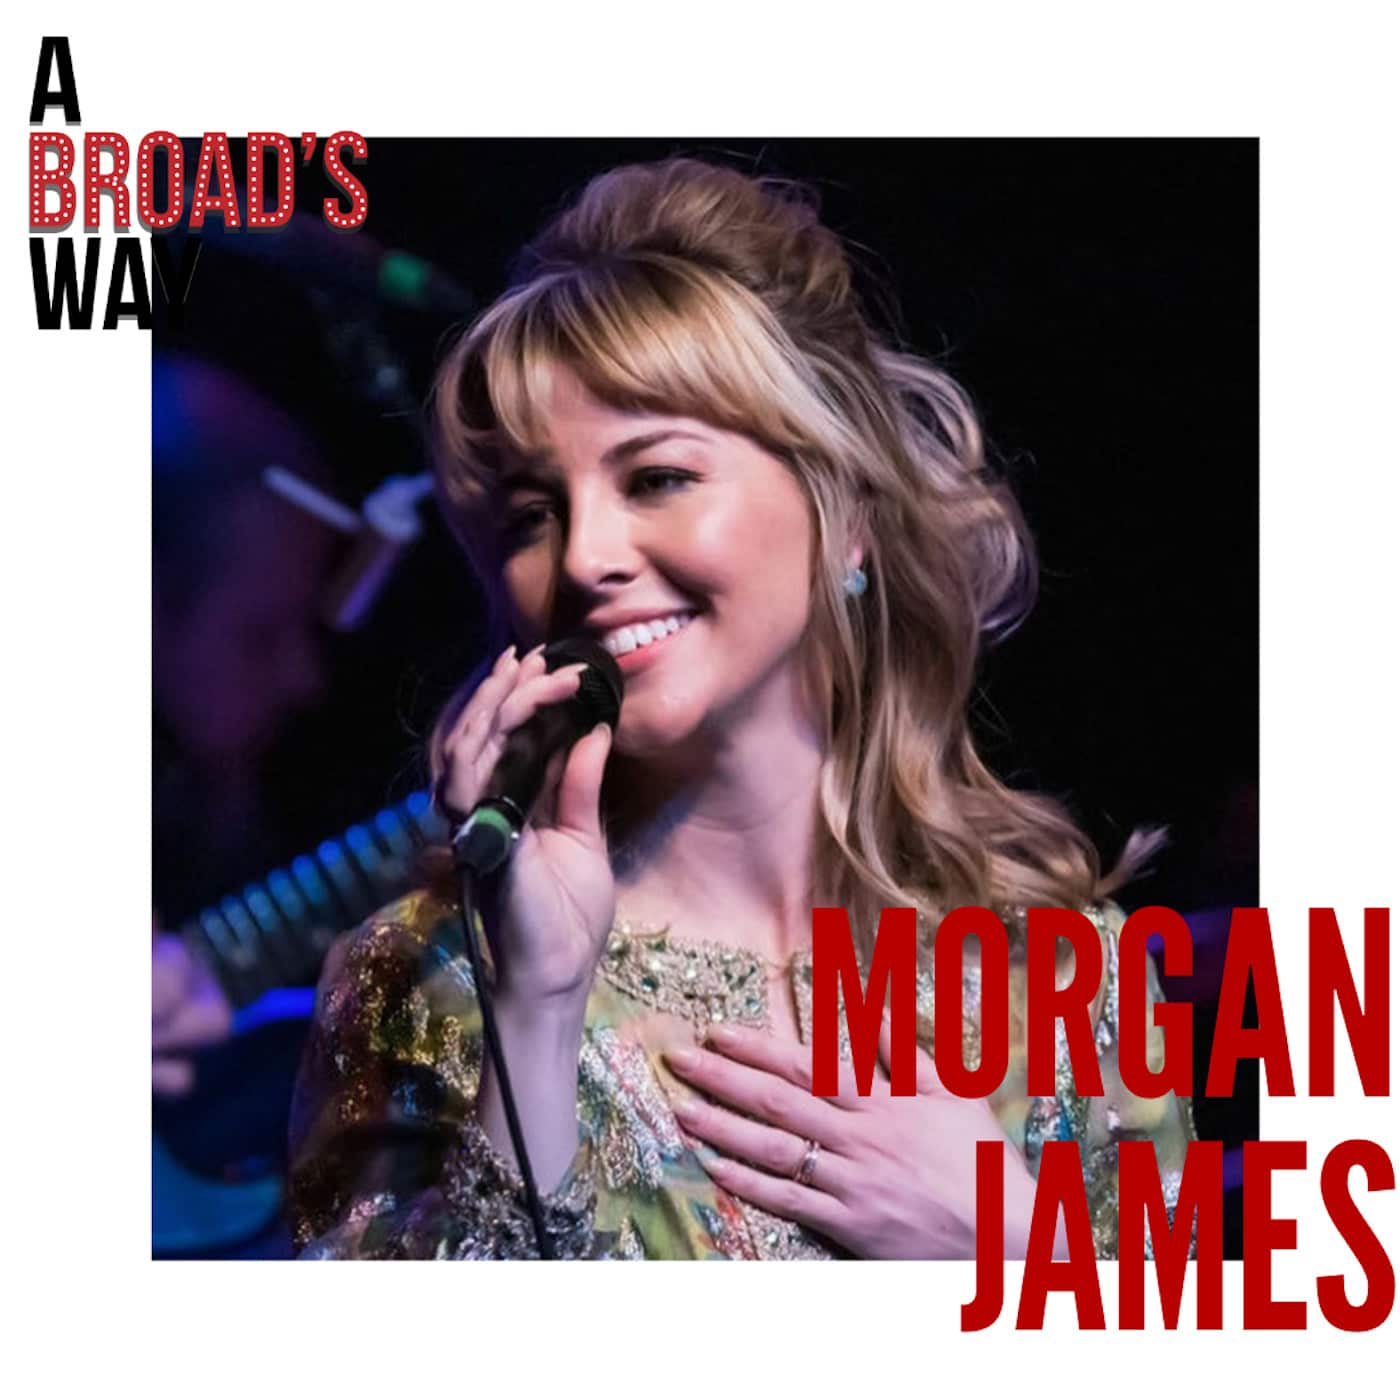 A Broad's Way Ep15 - Morgan James: Juilliard, broadway & soul music